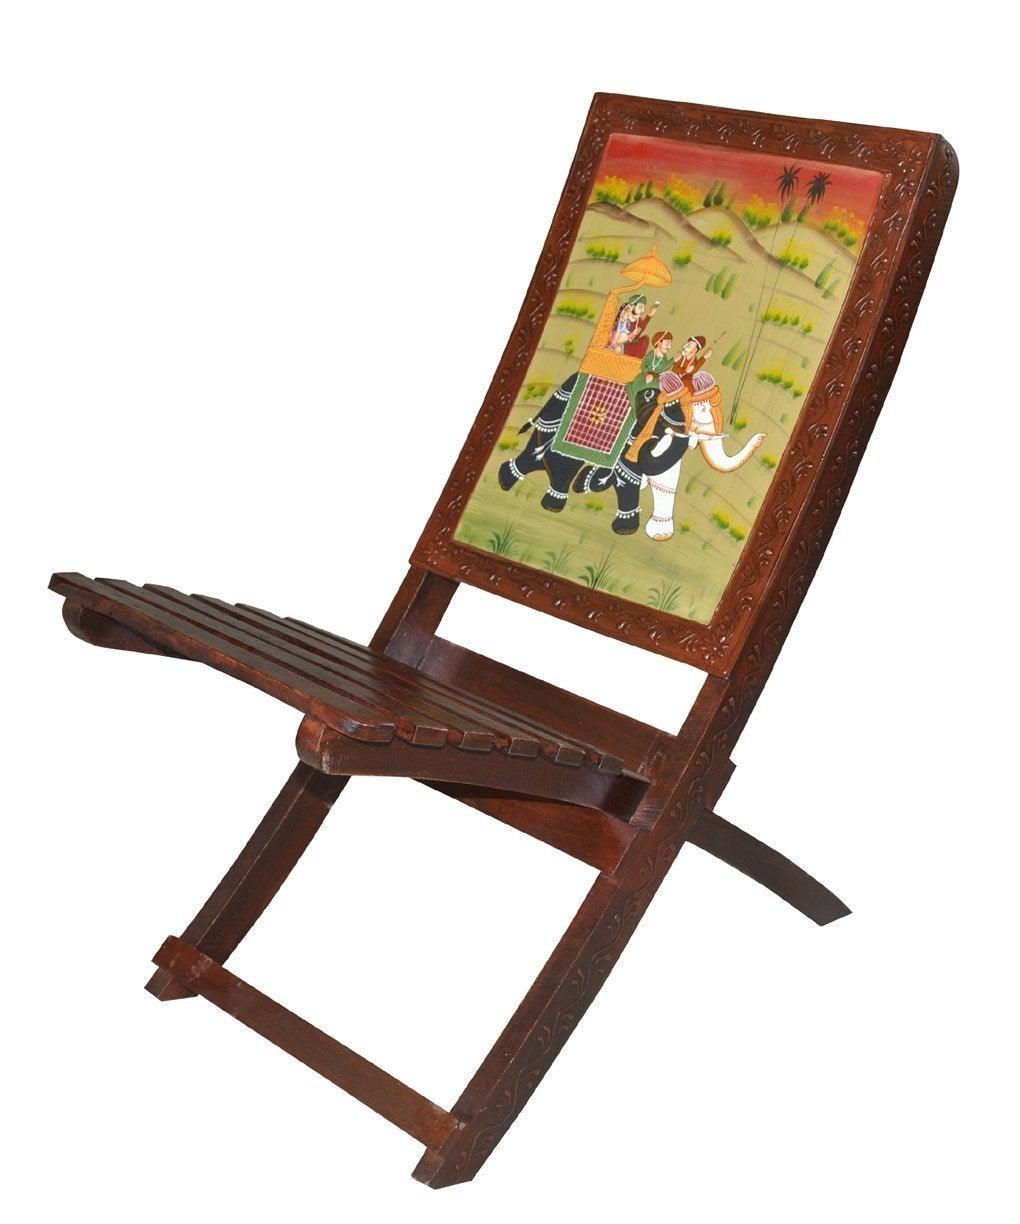 Handmade Ethnic Looks Wooden Folding Relaxing Chair with Hand Royal Painting - GreentouchCrafts